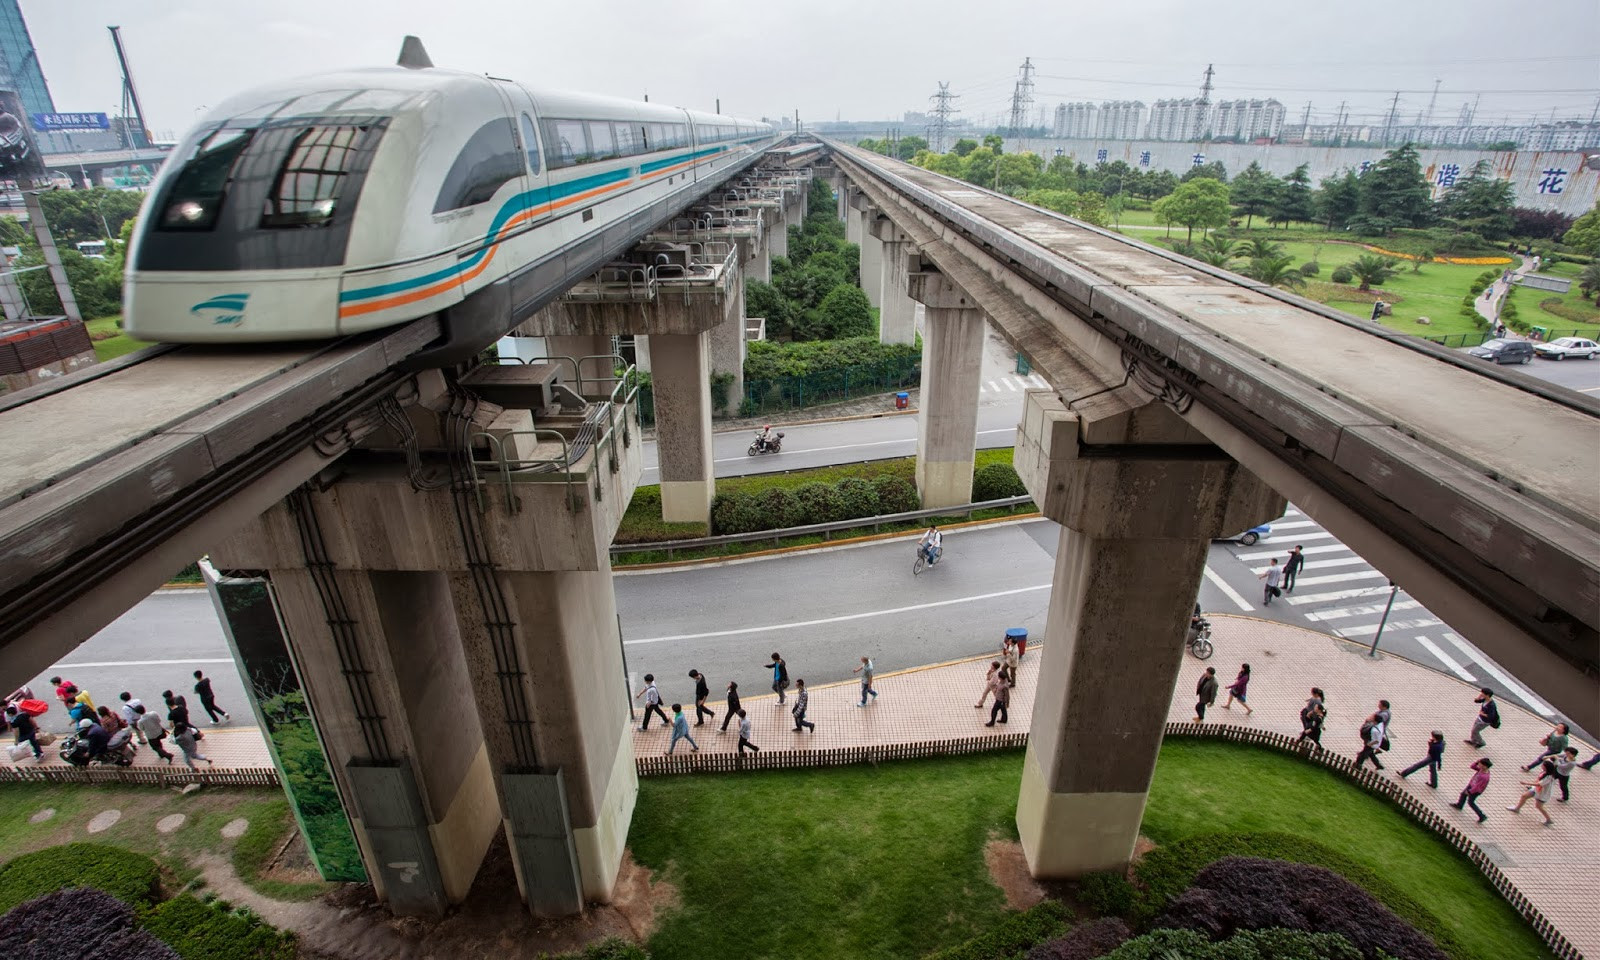 Shanghai Maglev Train Hd Wallpapers Hd Wallpapers High